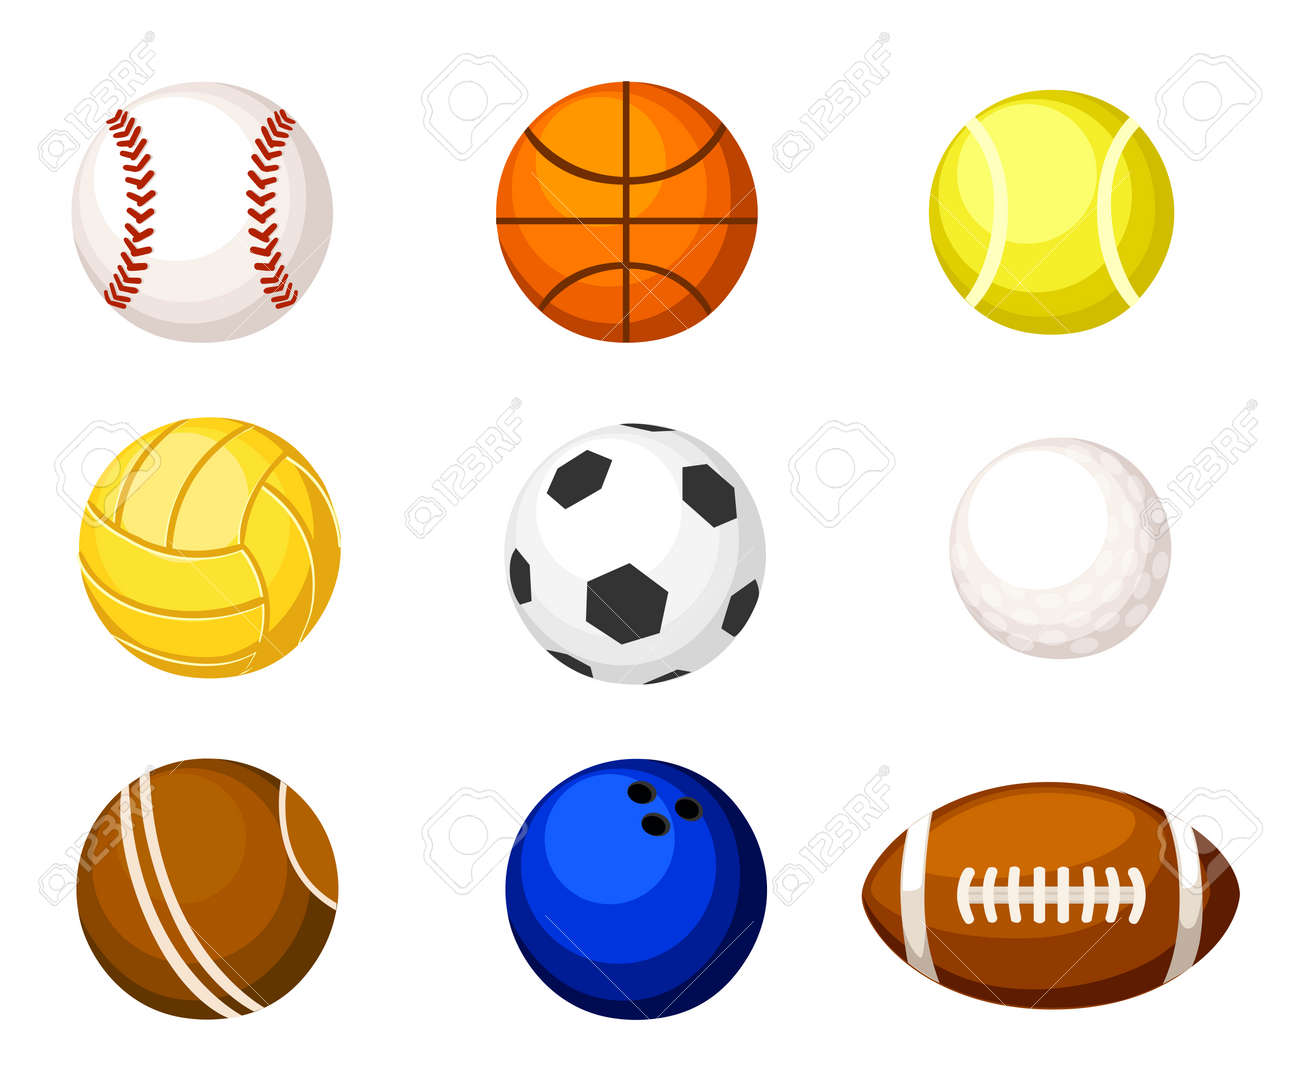 Collection Illustration Sports Balls Vector Cartoon Ball Set Royalty Free Cliparts Vectors And Stock Illustration Image 77394754